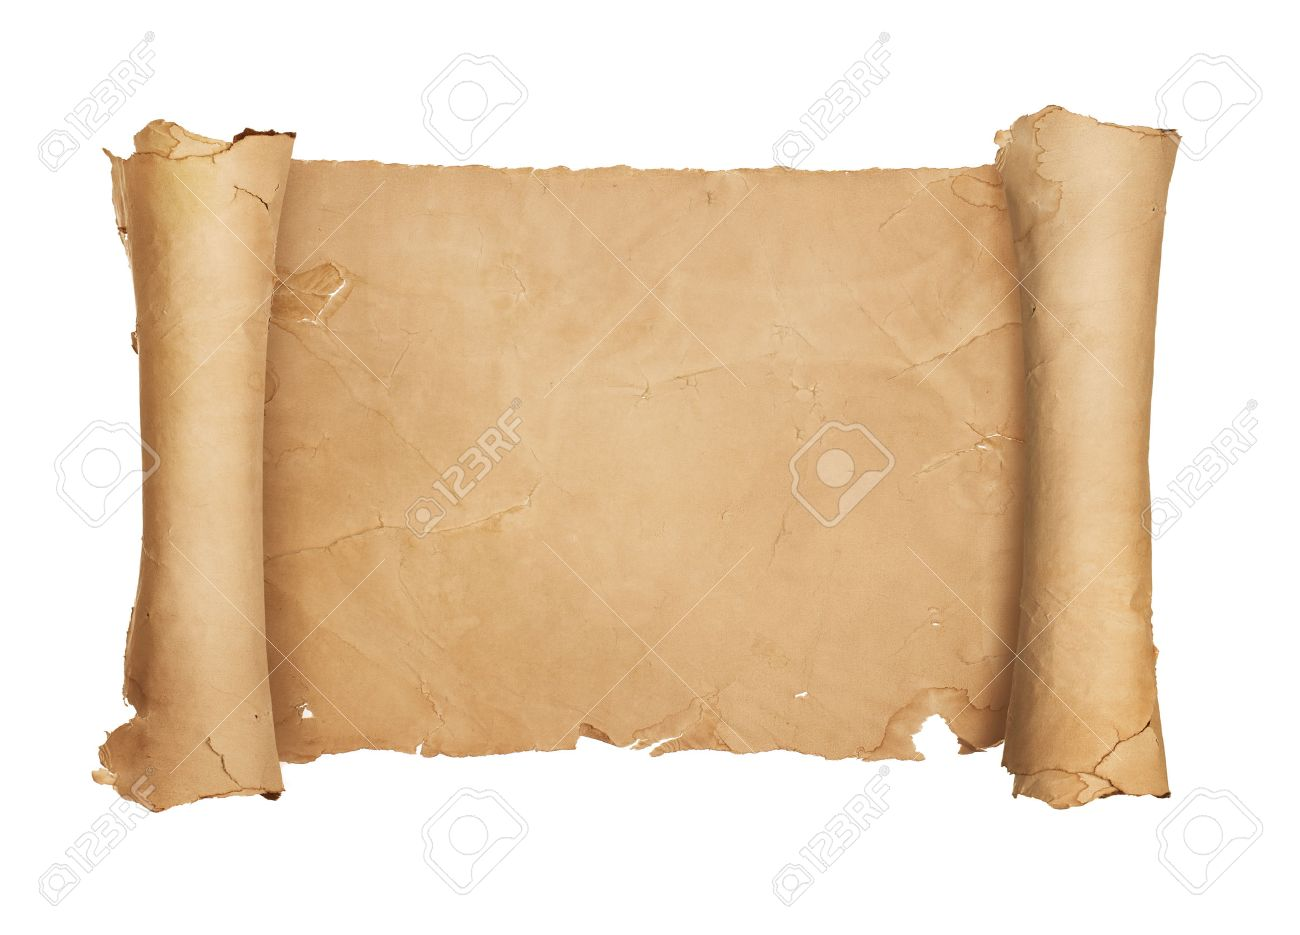 pirate copy images u0026 stock pictures royalty free pirate copy